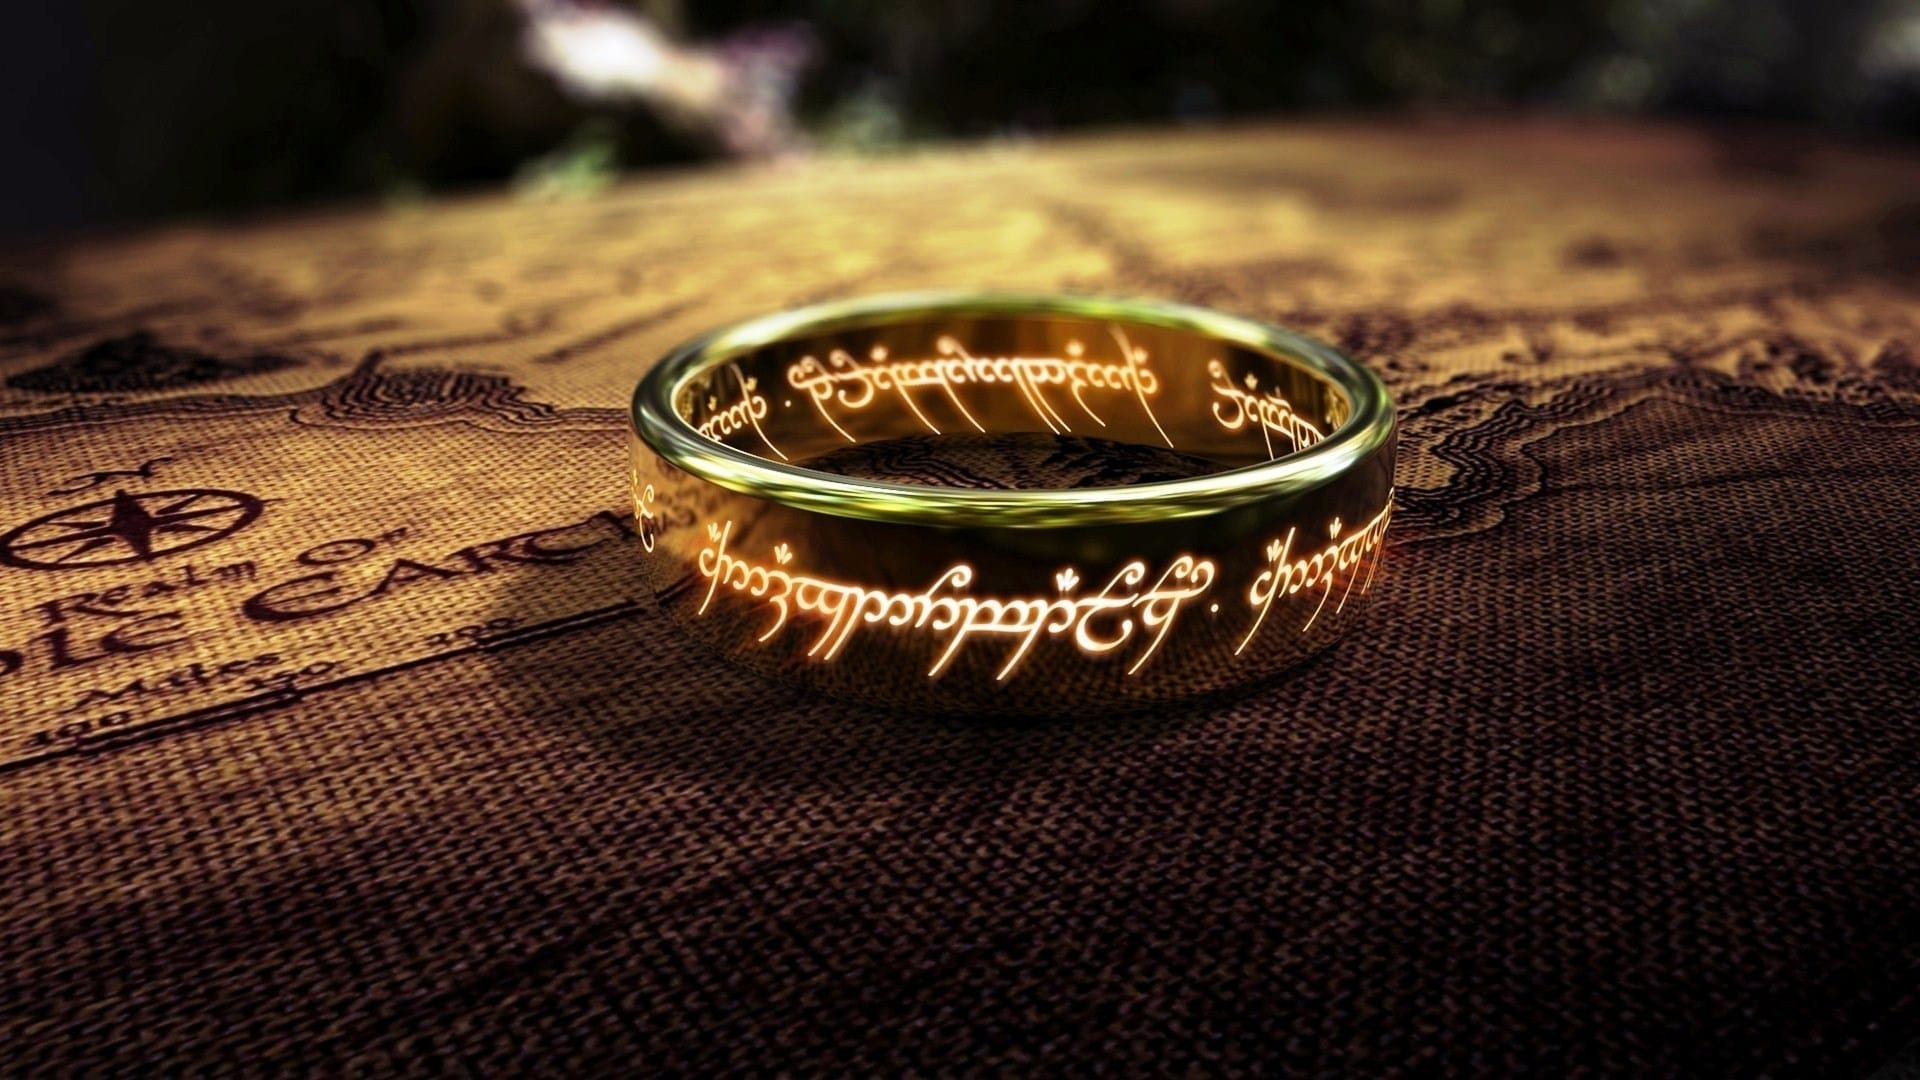 8 Books Like Lord of the Rings